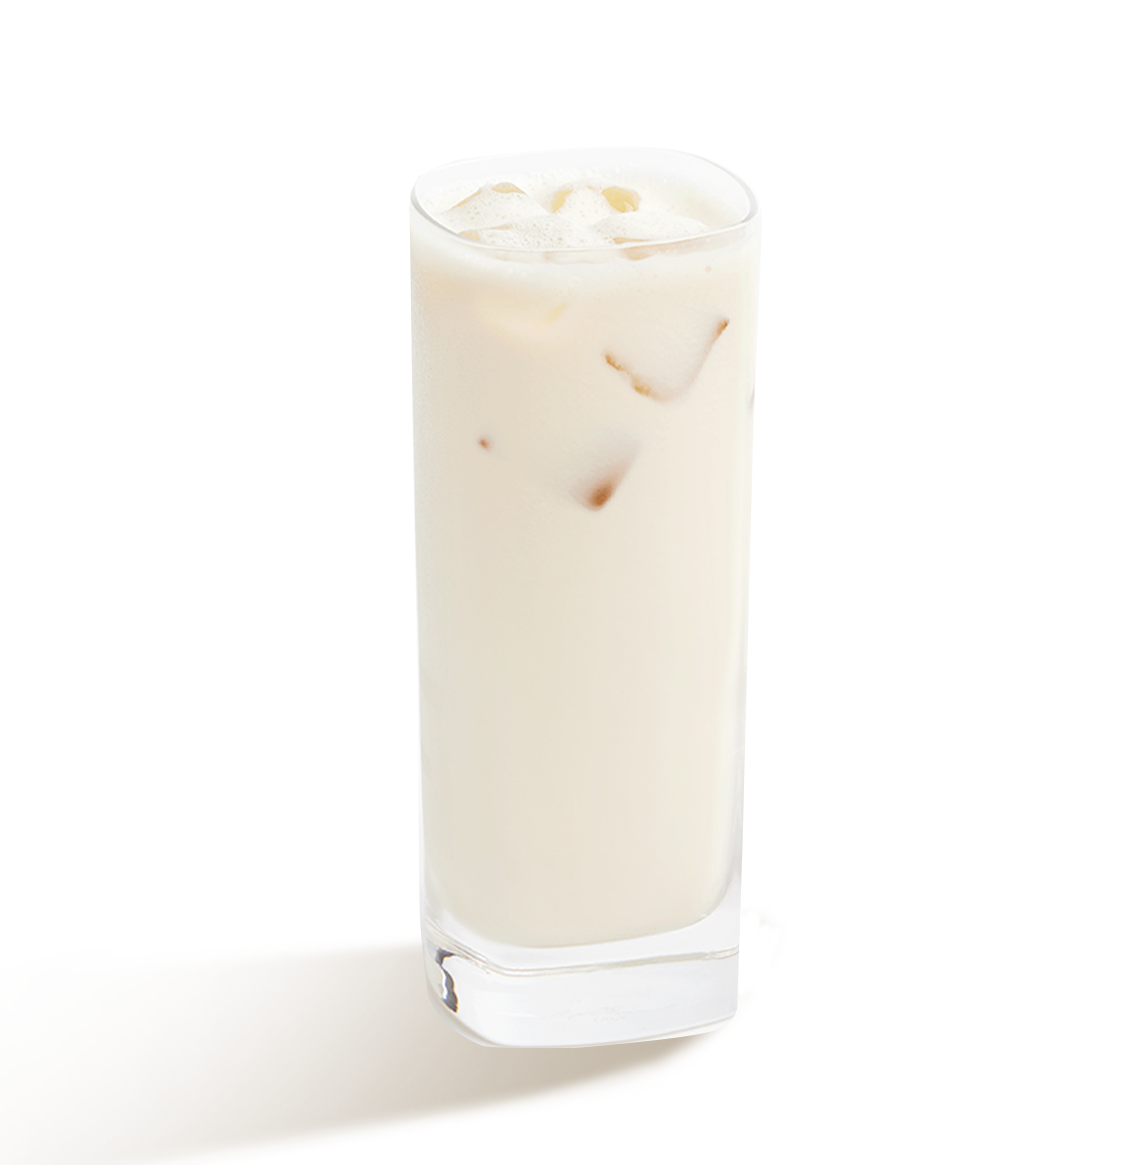 Mount Wu Milk Tea (Cold)清龙茶奶(冰)